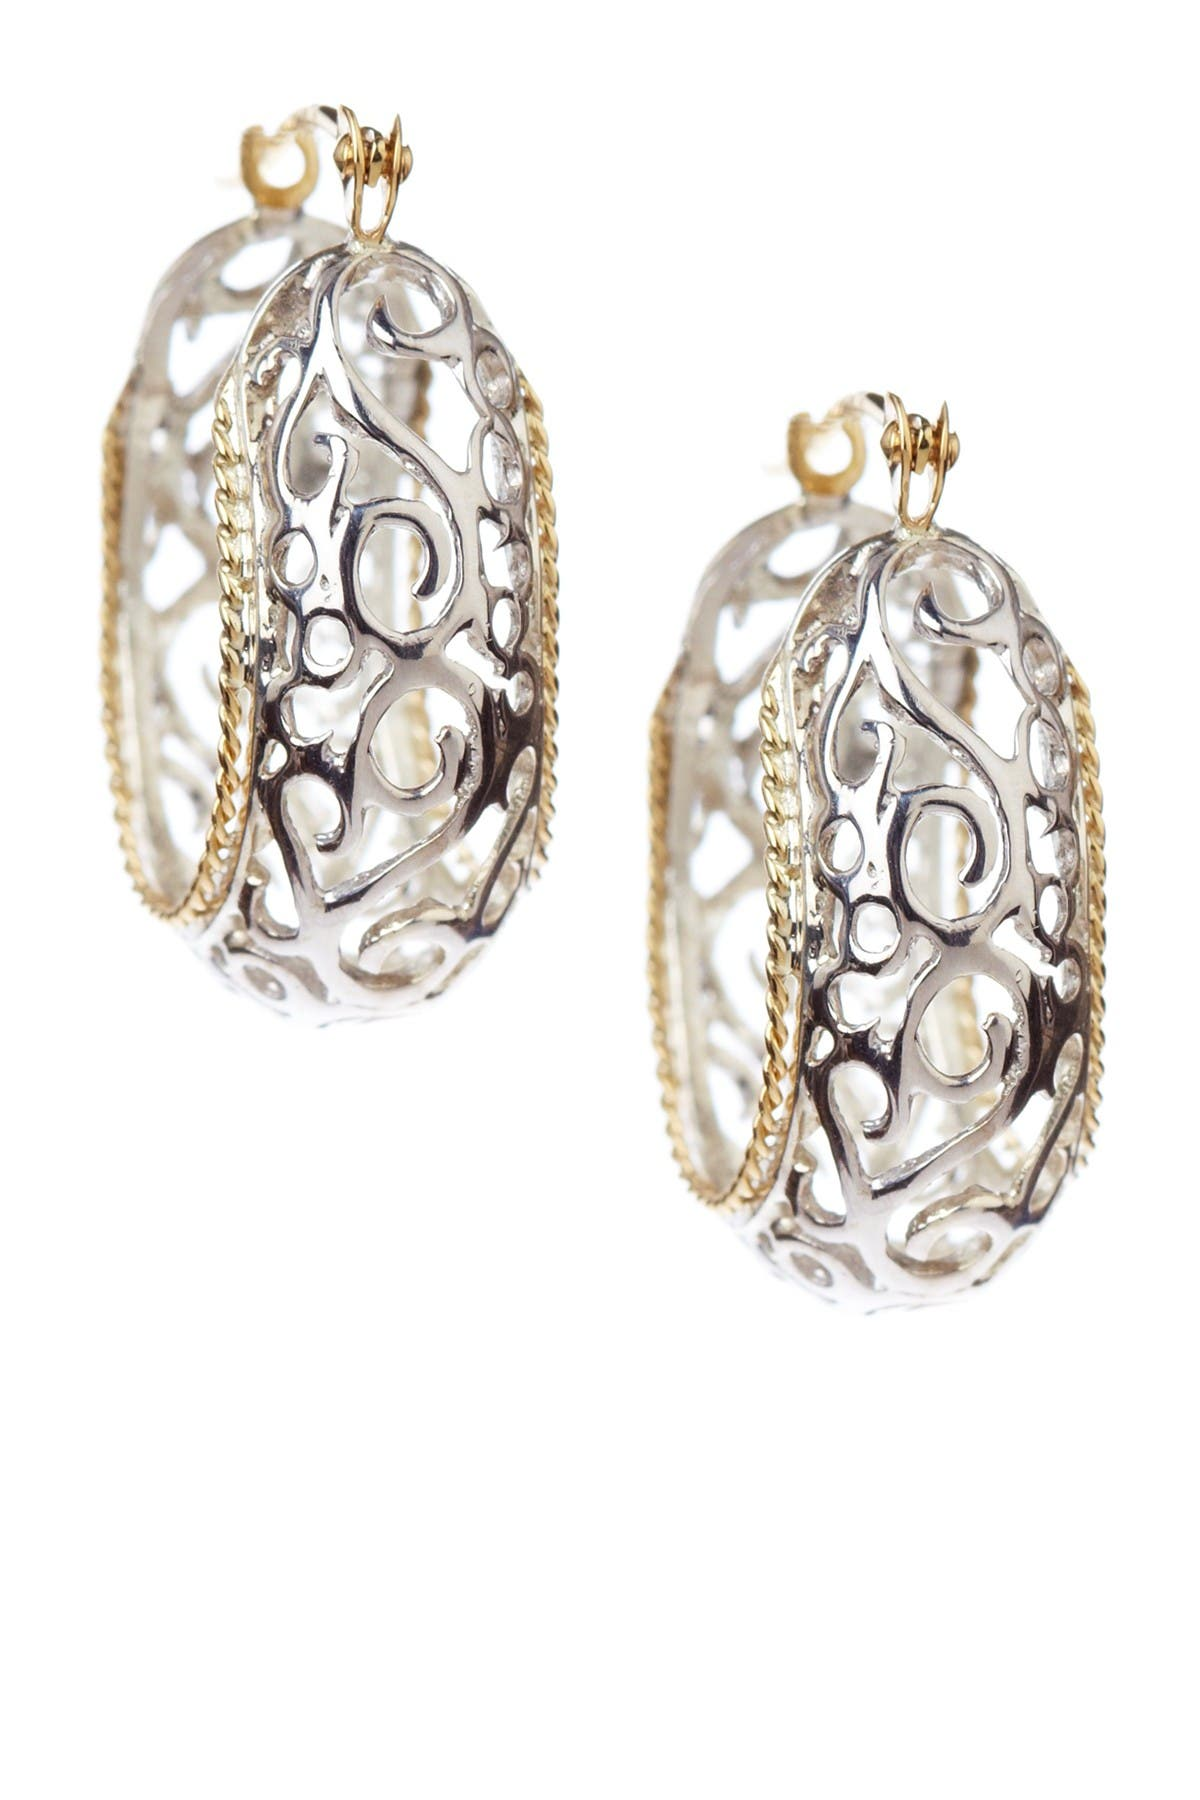 Image of Candela Sterling Silver 14K Yellow Gold Cutout Oval Hoop Earrings